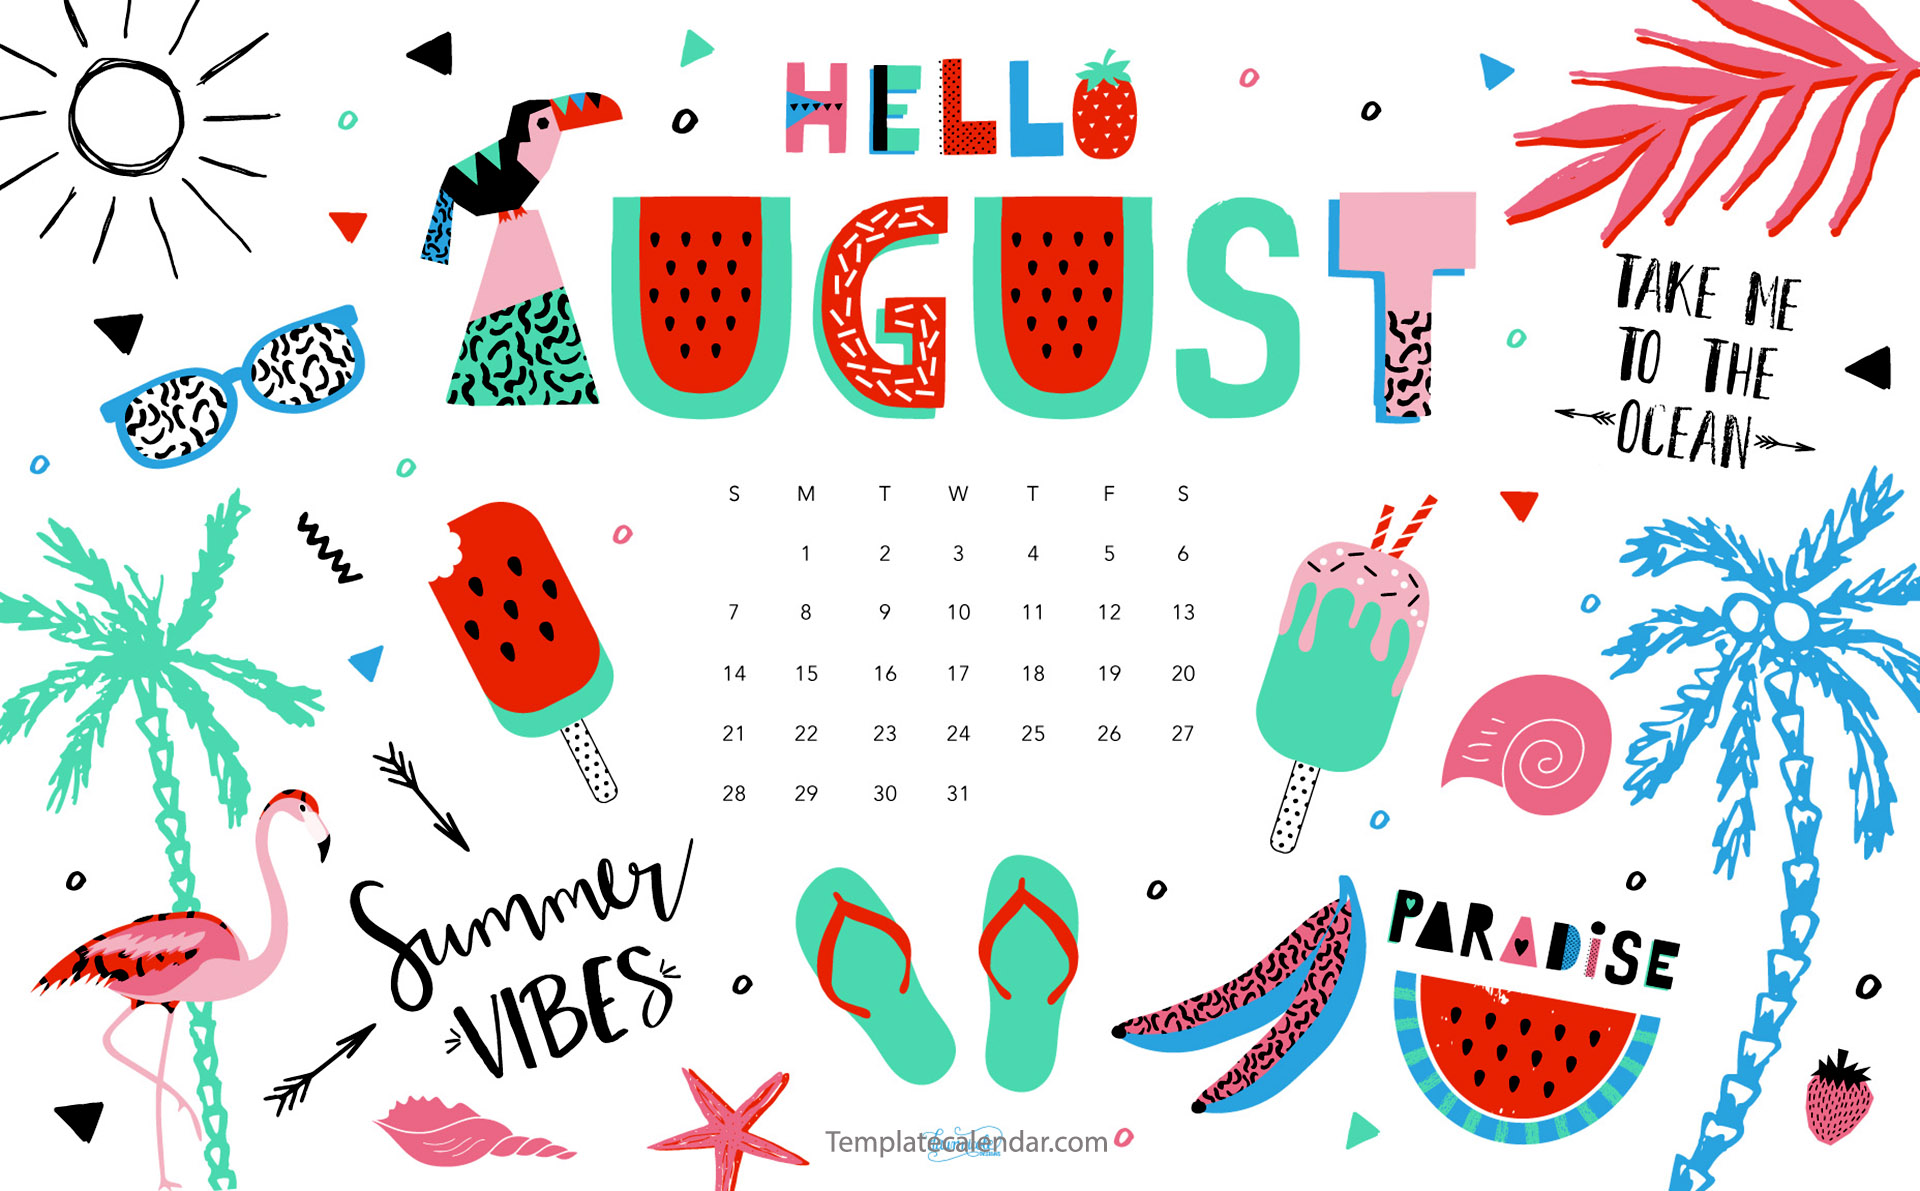 Wallpaper with calendar downloadclipart. August clipart august 2017